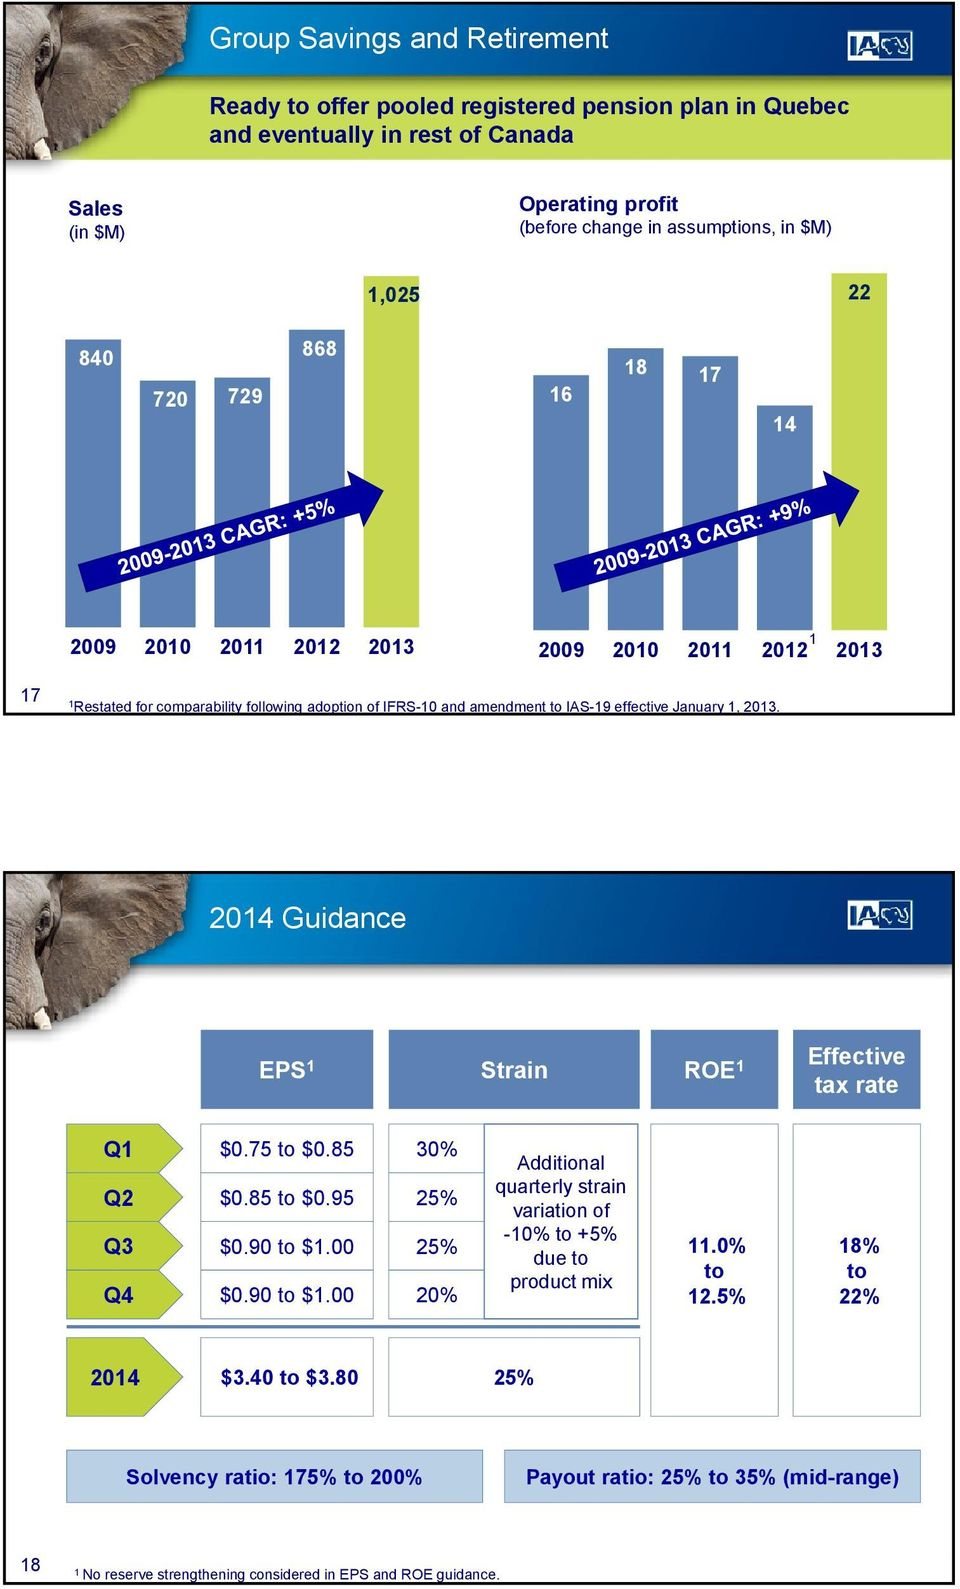 2014 Guidance EPS 1 Strain ROE 1 Effective tax rate Q1 Q2 Q3 Q4 $0.75 to $0.85 $0.85 to $0.95 $0.90 to $1.